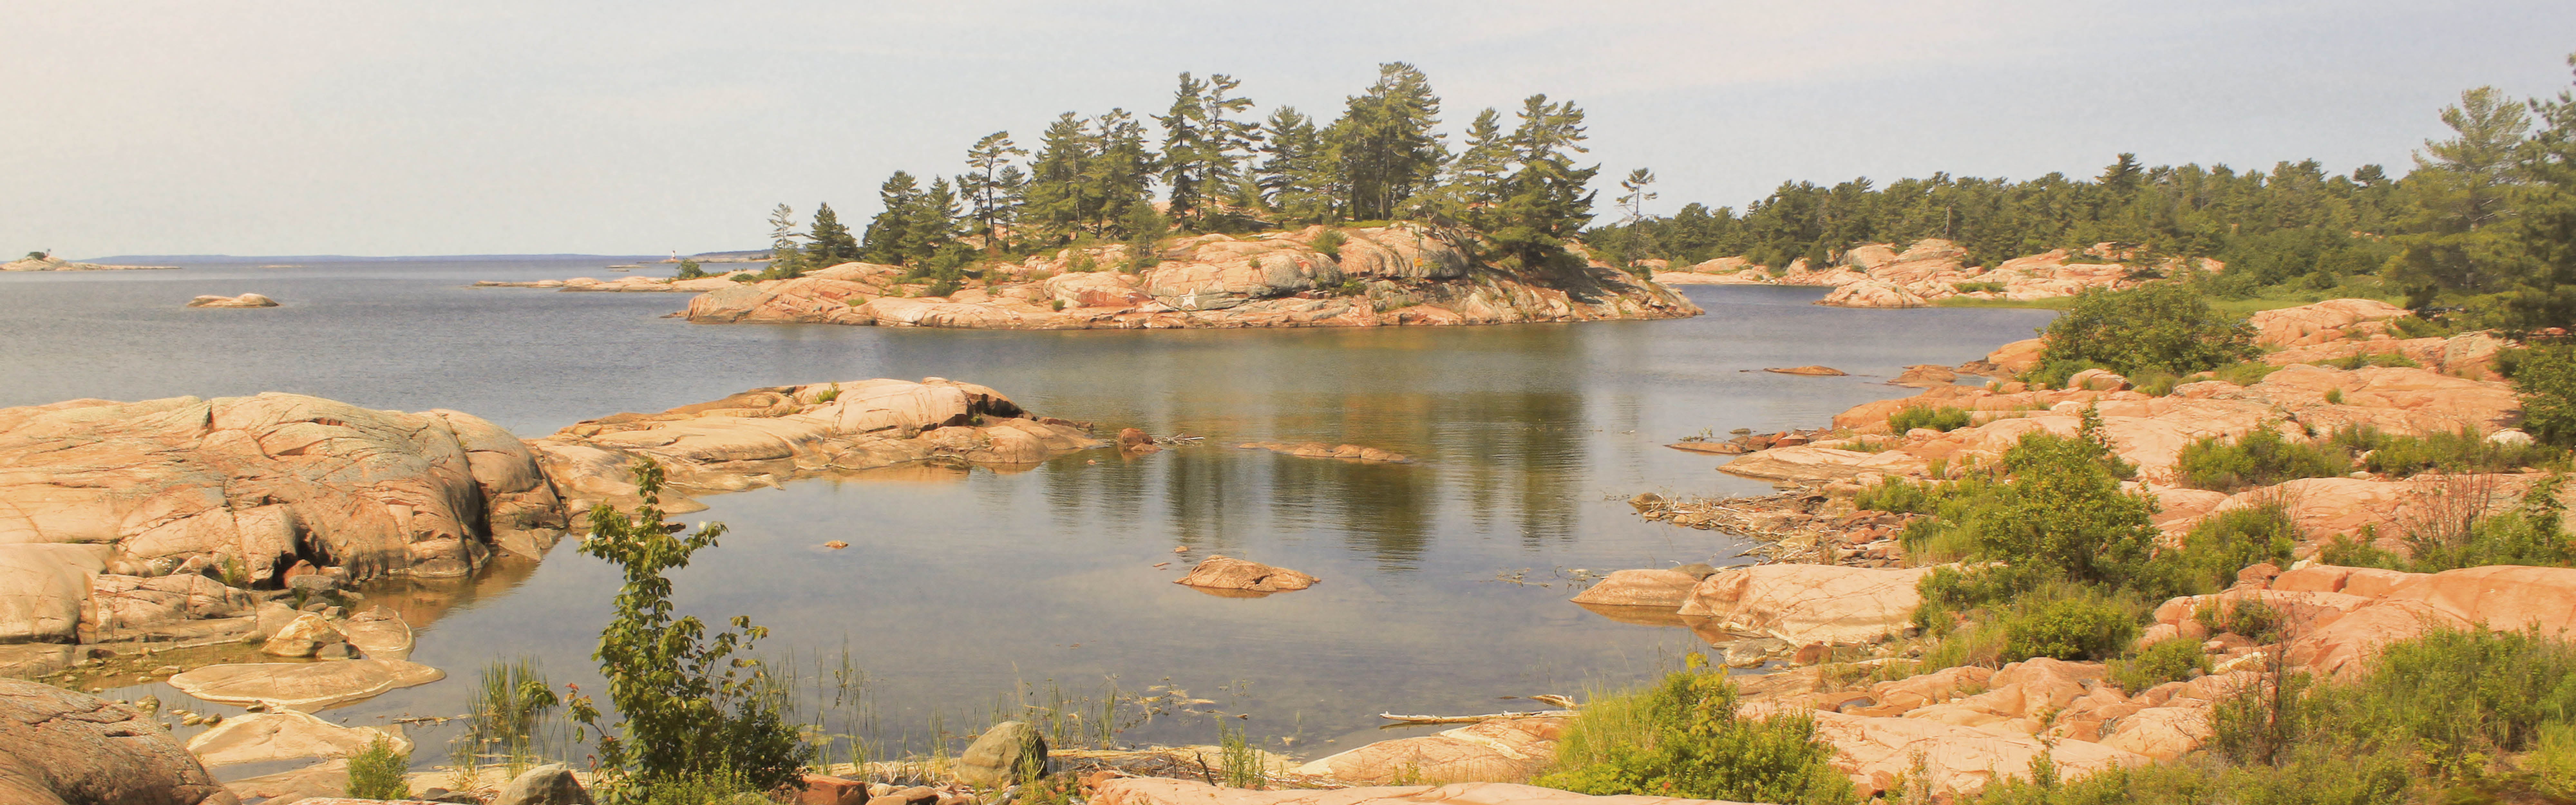 Photo of Northern Ontario Lake, with a rocky shoreline and large pine trees off in the distance.